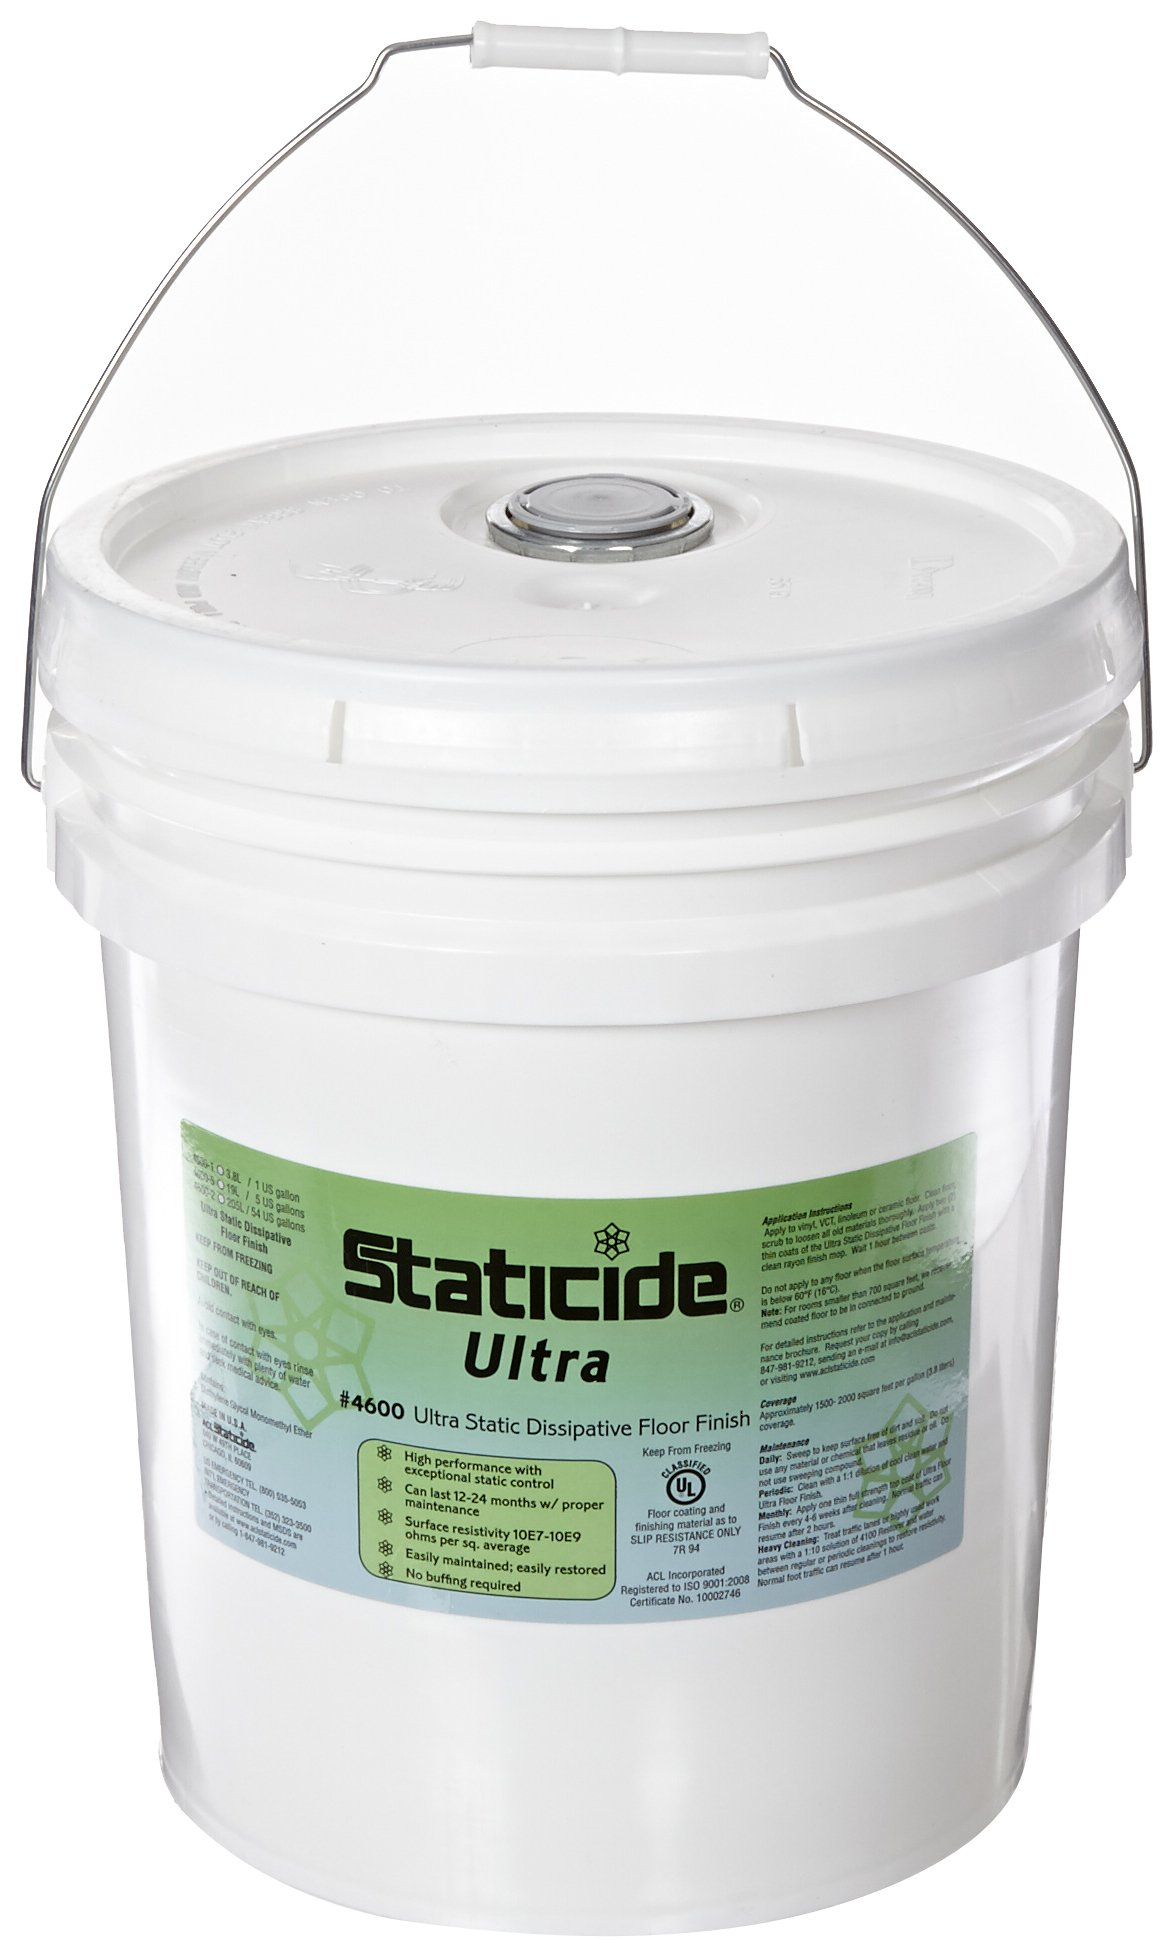 ACL Staticide 4600-5 Ultra Floor Finish, 5 Gallon Pail